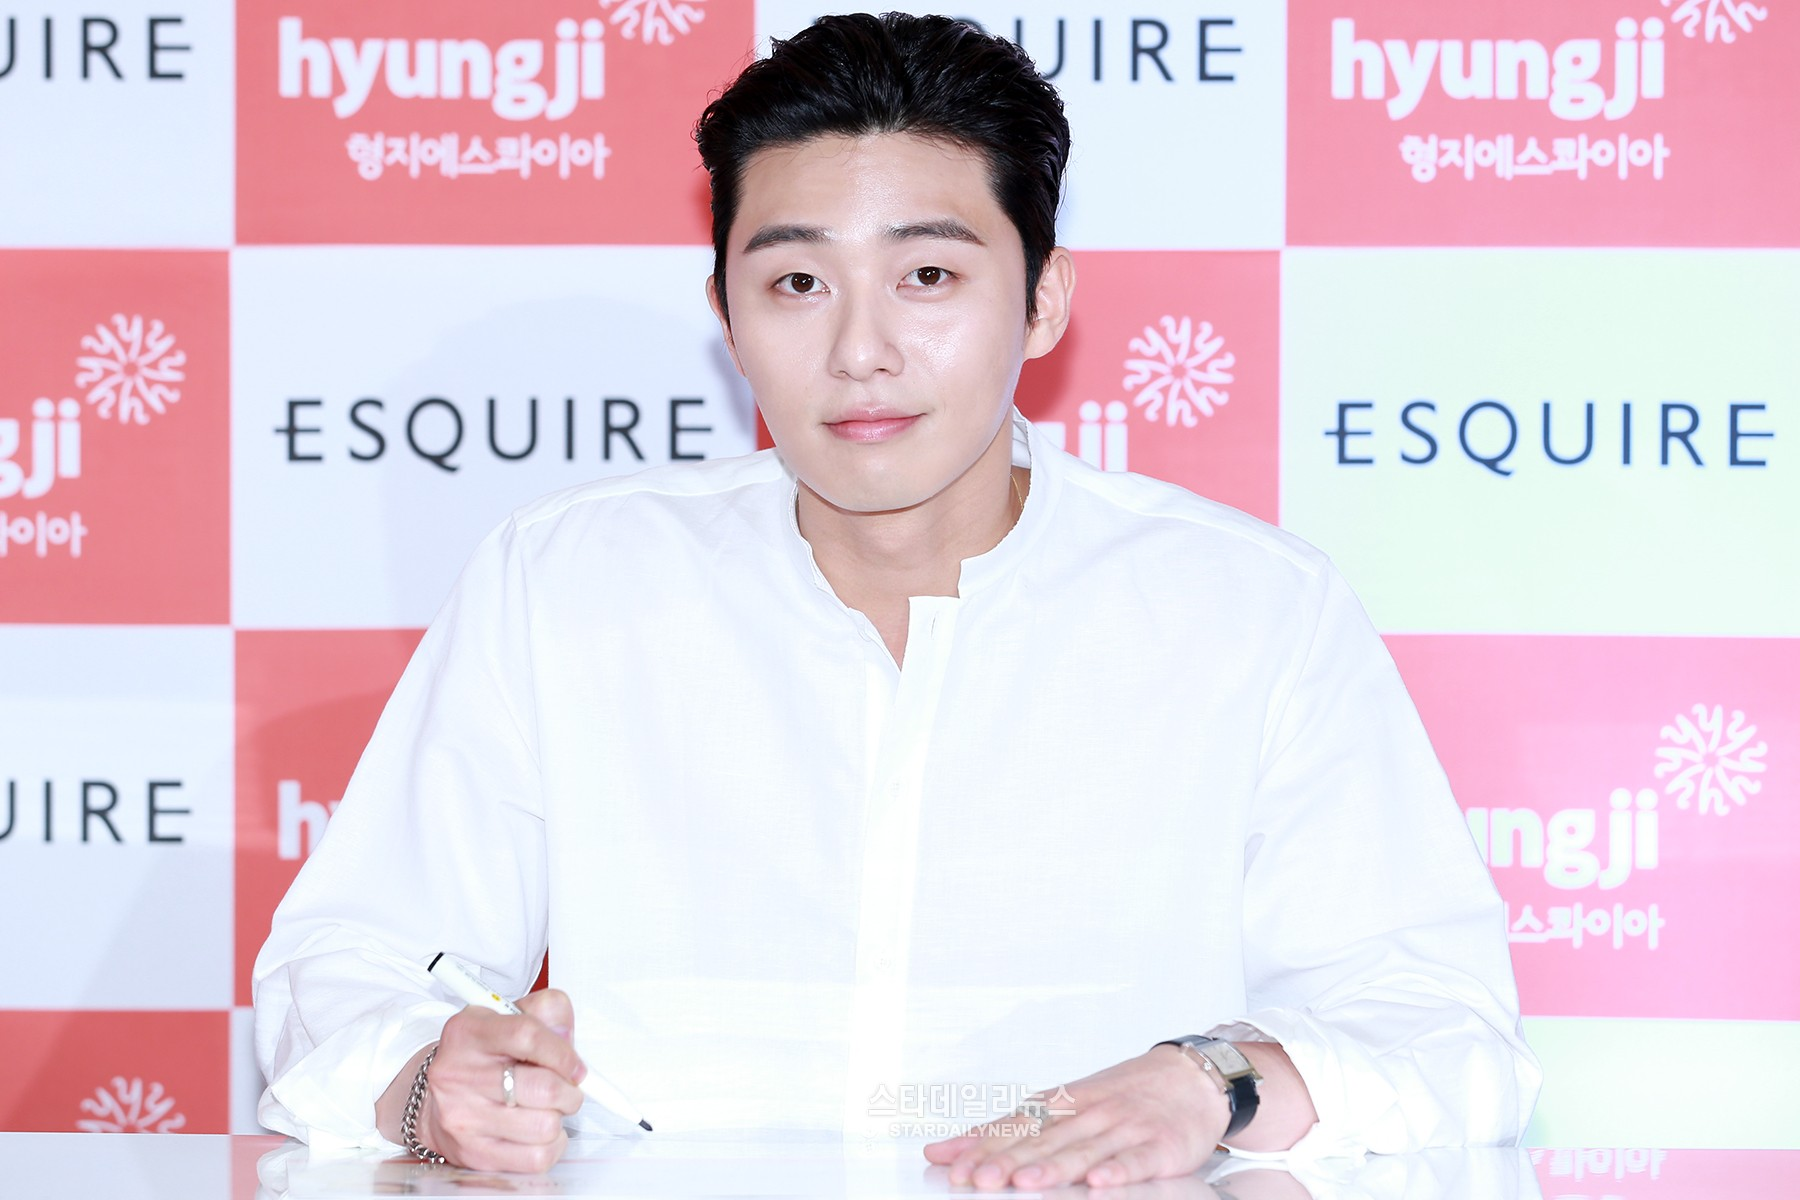 Watch: Park Seo Joon Makes Fans Swoon With Intimate Kisses